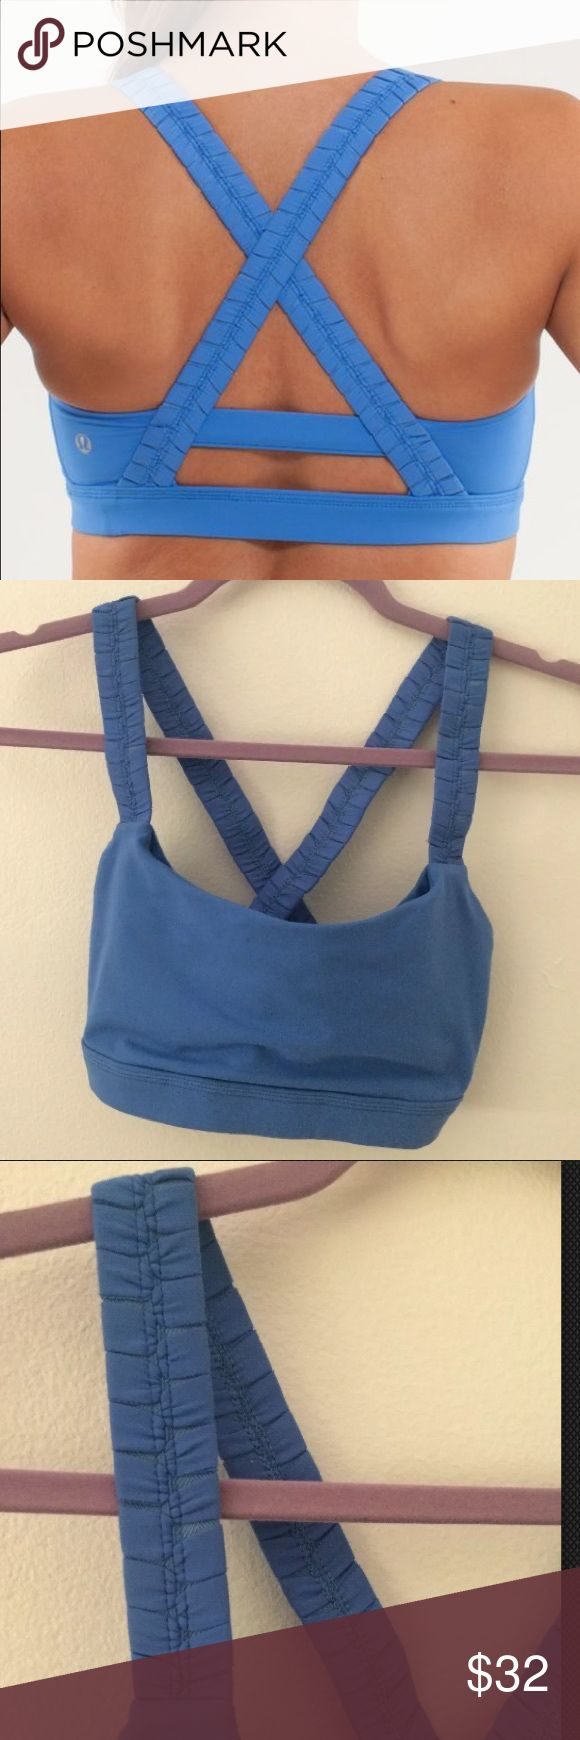 "Lululemon Blue Inner Heart Bra Size 6 Lululemon Blue Inner Heart Bra Size 6. Cute cross back. Laying Flat measures approximately 12.5"" wide, 12"" long lululemon athletica Intimates & Sleepwear Bras"